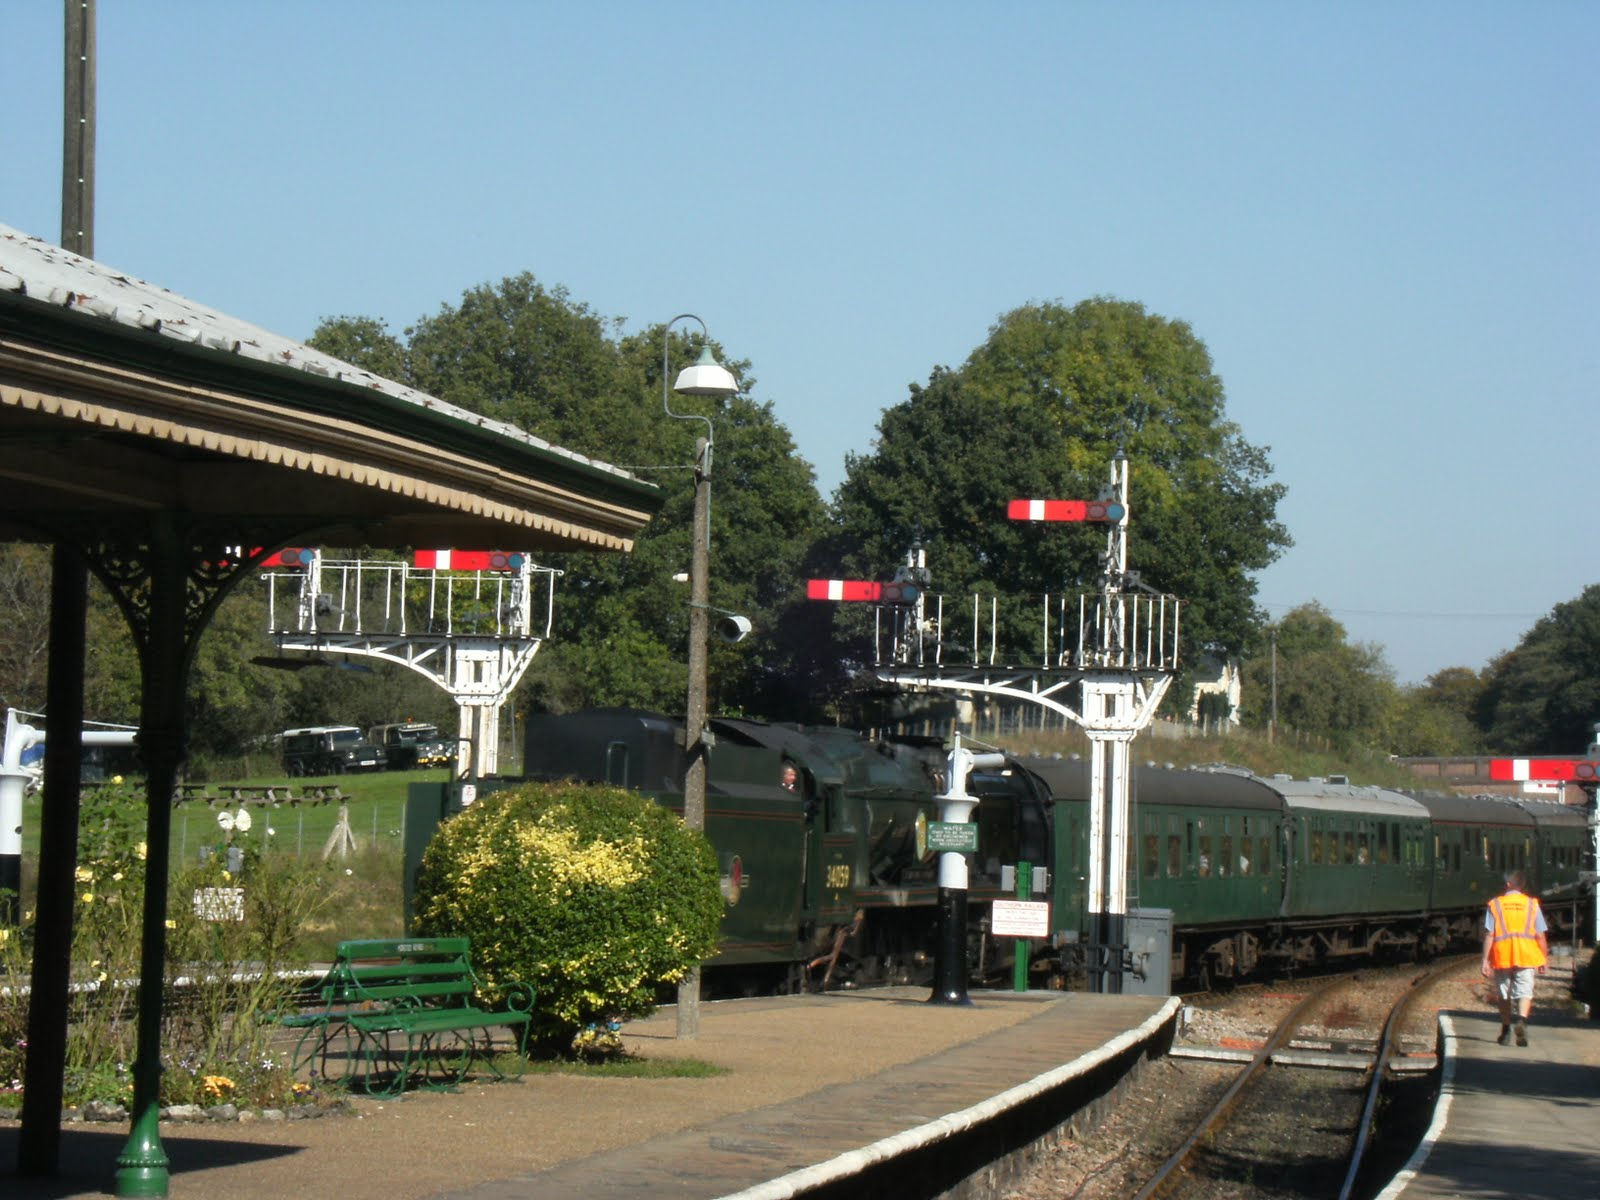 DSCF9725 The 12:13 arrives at Horsted Keynes station